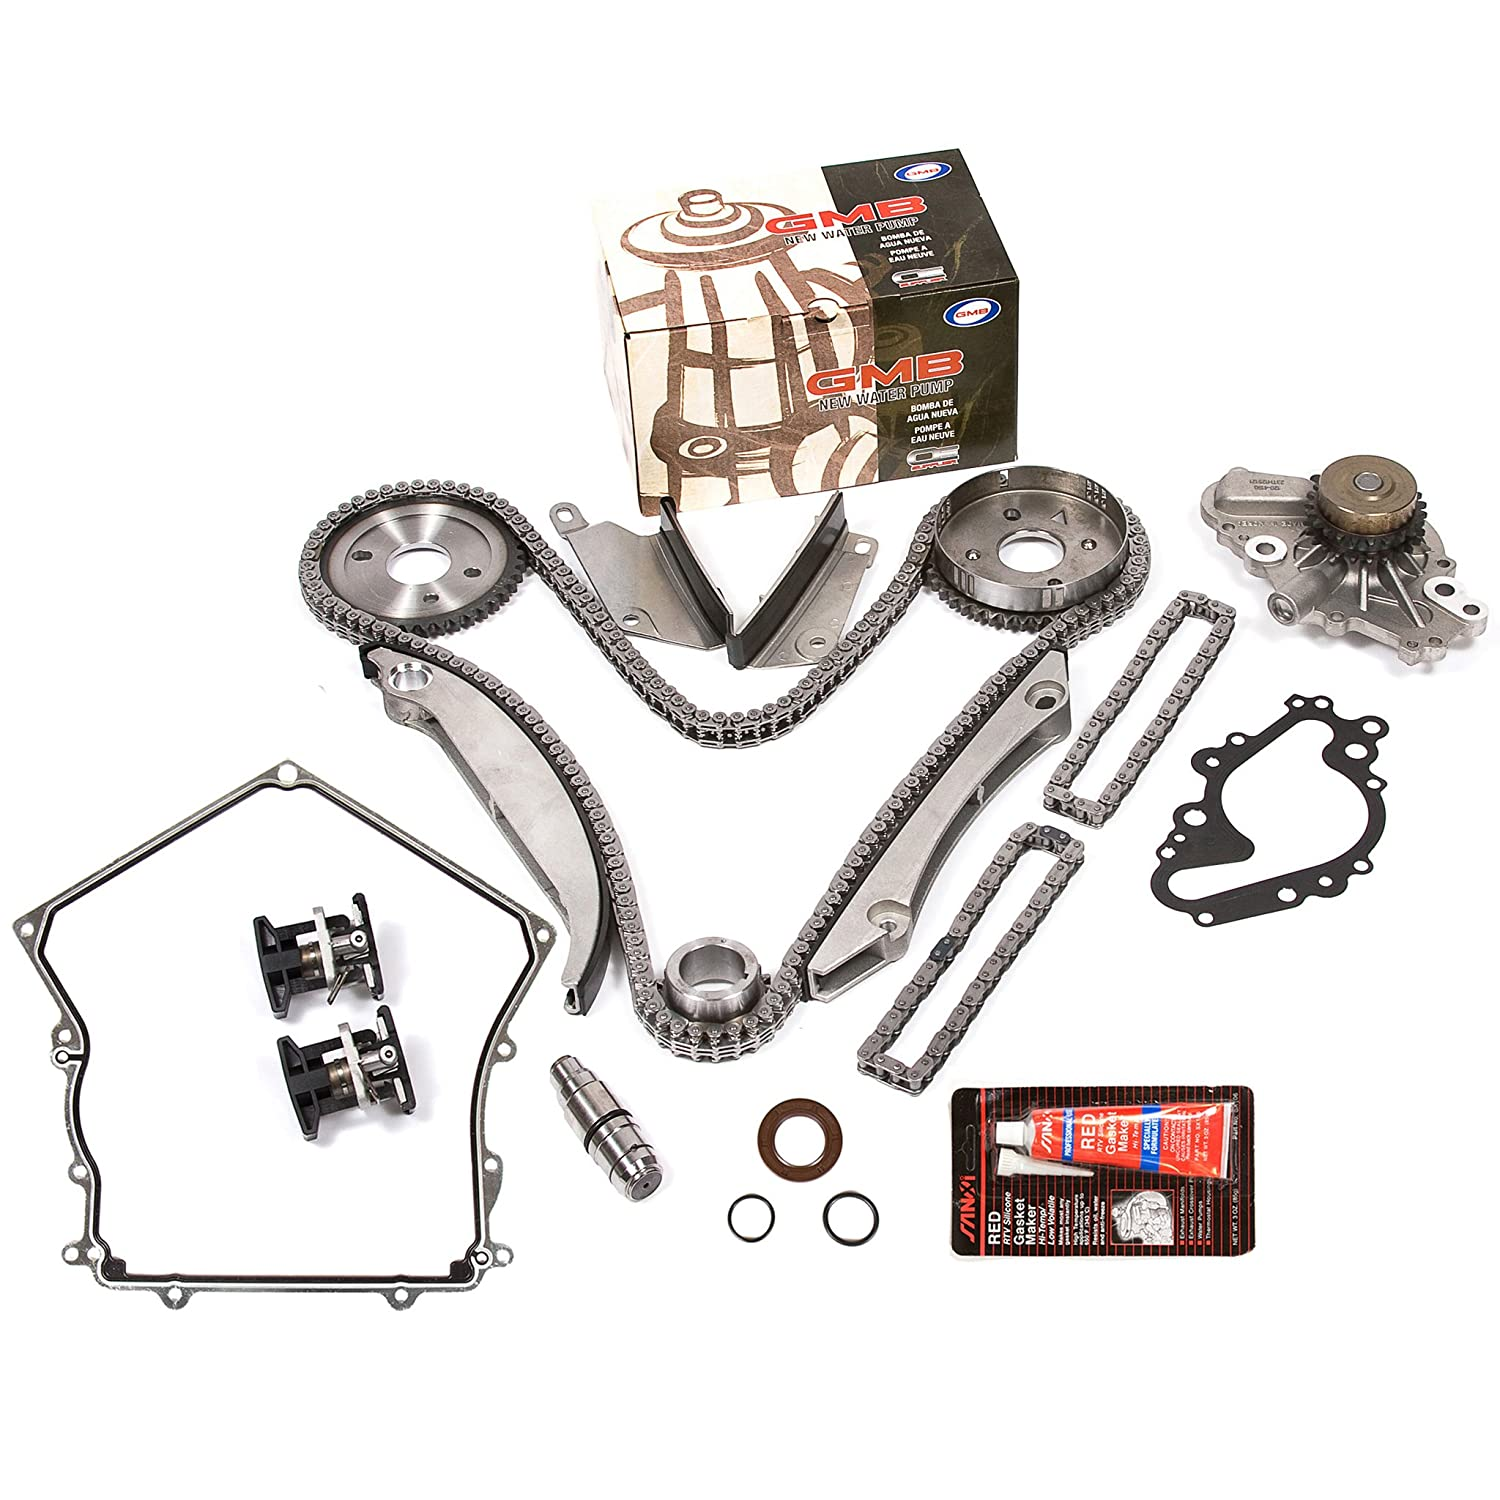 Evergreen TKTCS5028HWP 02-06 Chrysler Dodge V6 2.7L EER Timing Chain Kit GMB Water Pump (NGC Cam Gear) Timing Cover Gasket Evergreen Parts And Components